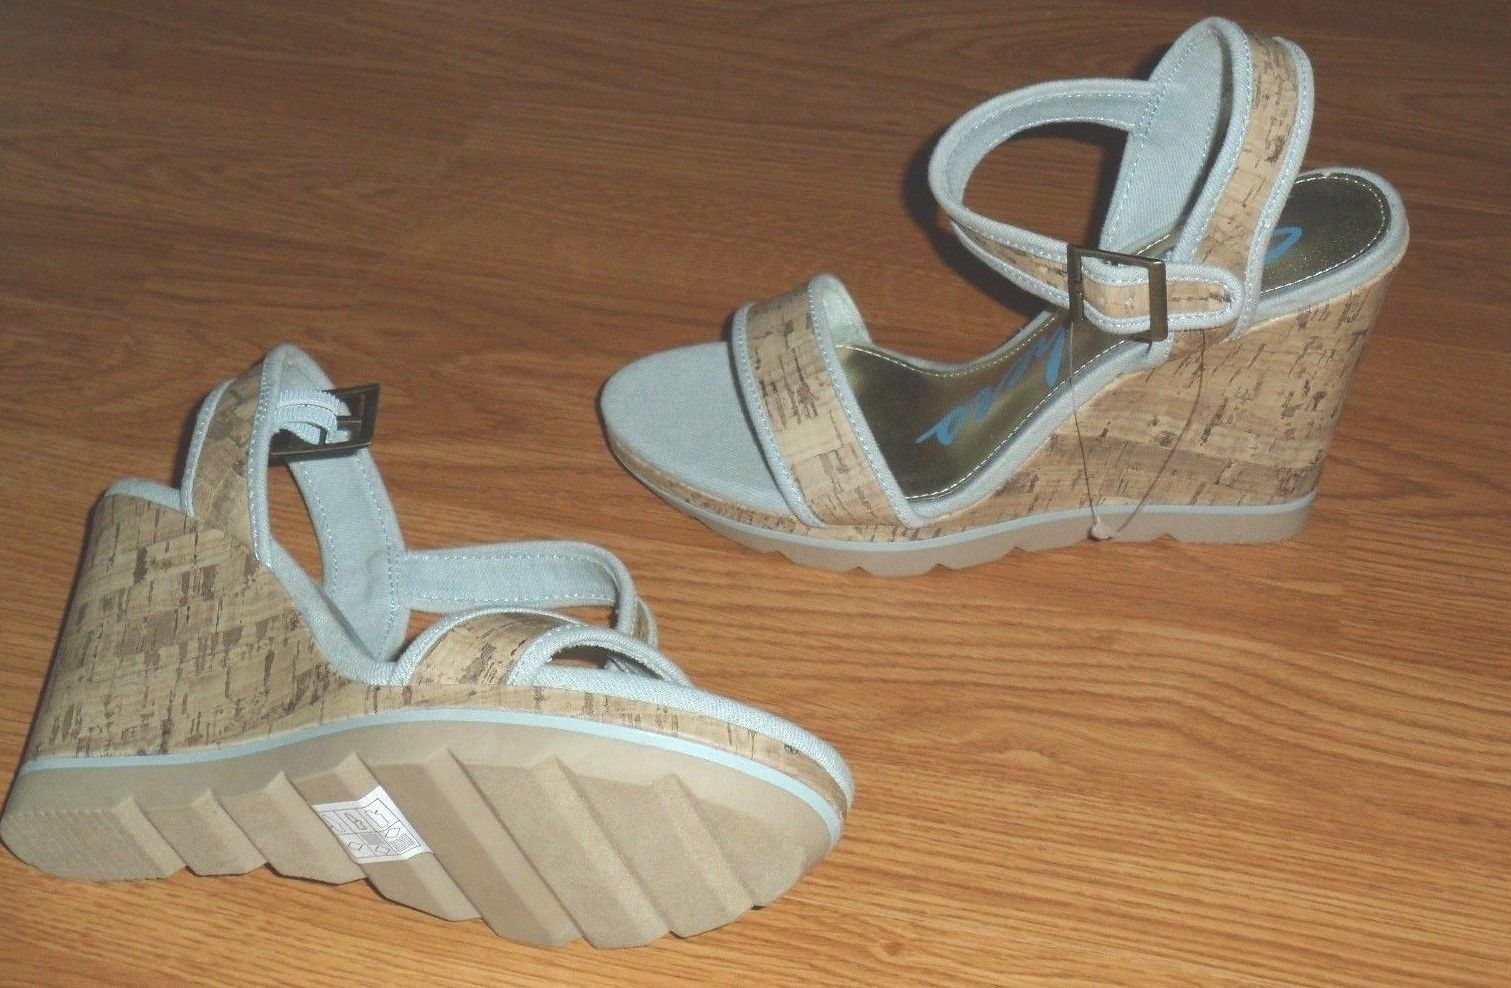 SKECHERS WEDGE HEEL SHOES SIZE 9 STRAPPY BLUE ANKLE STRAP NWT